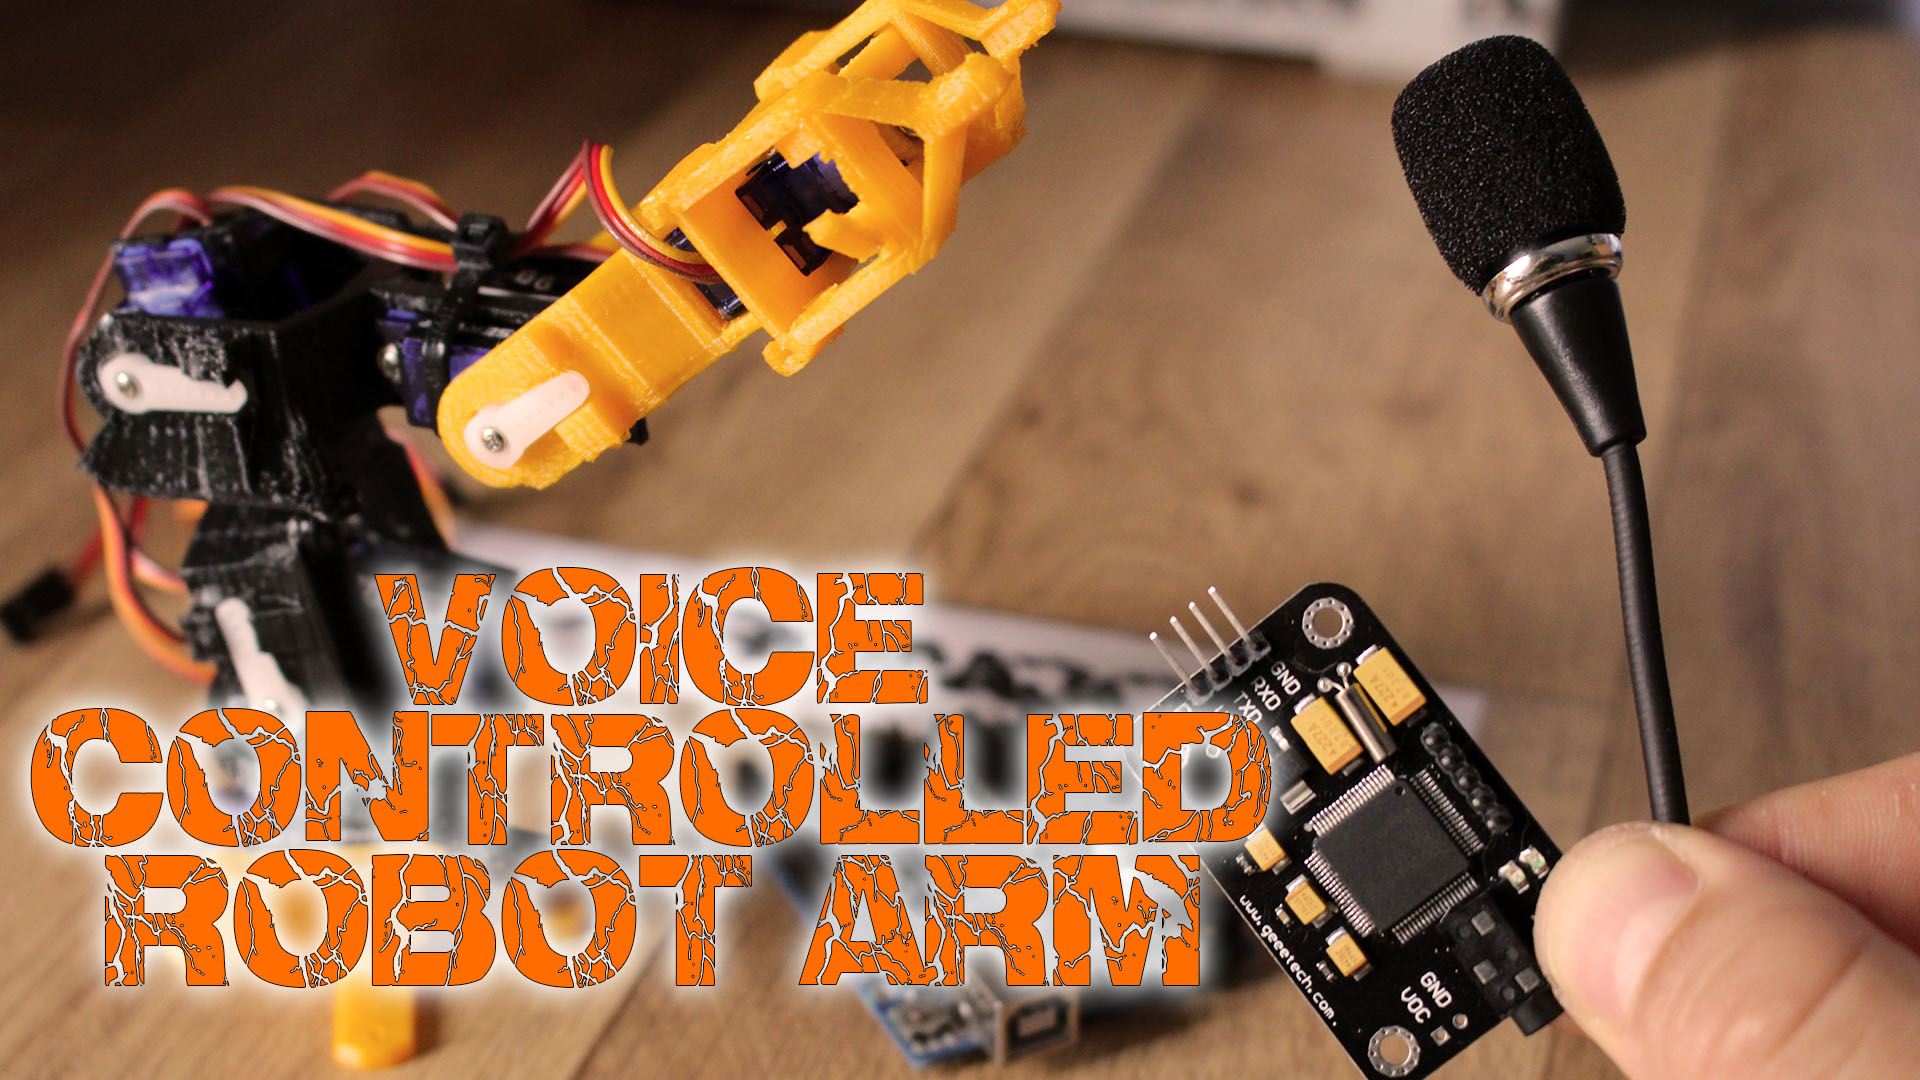 Voice controlled 3D printed robot arm